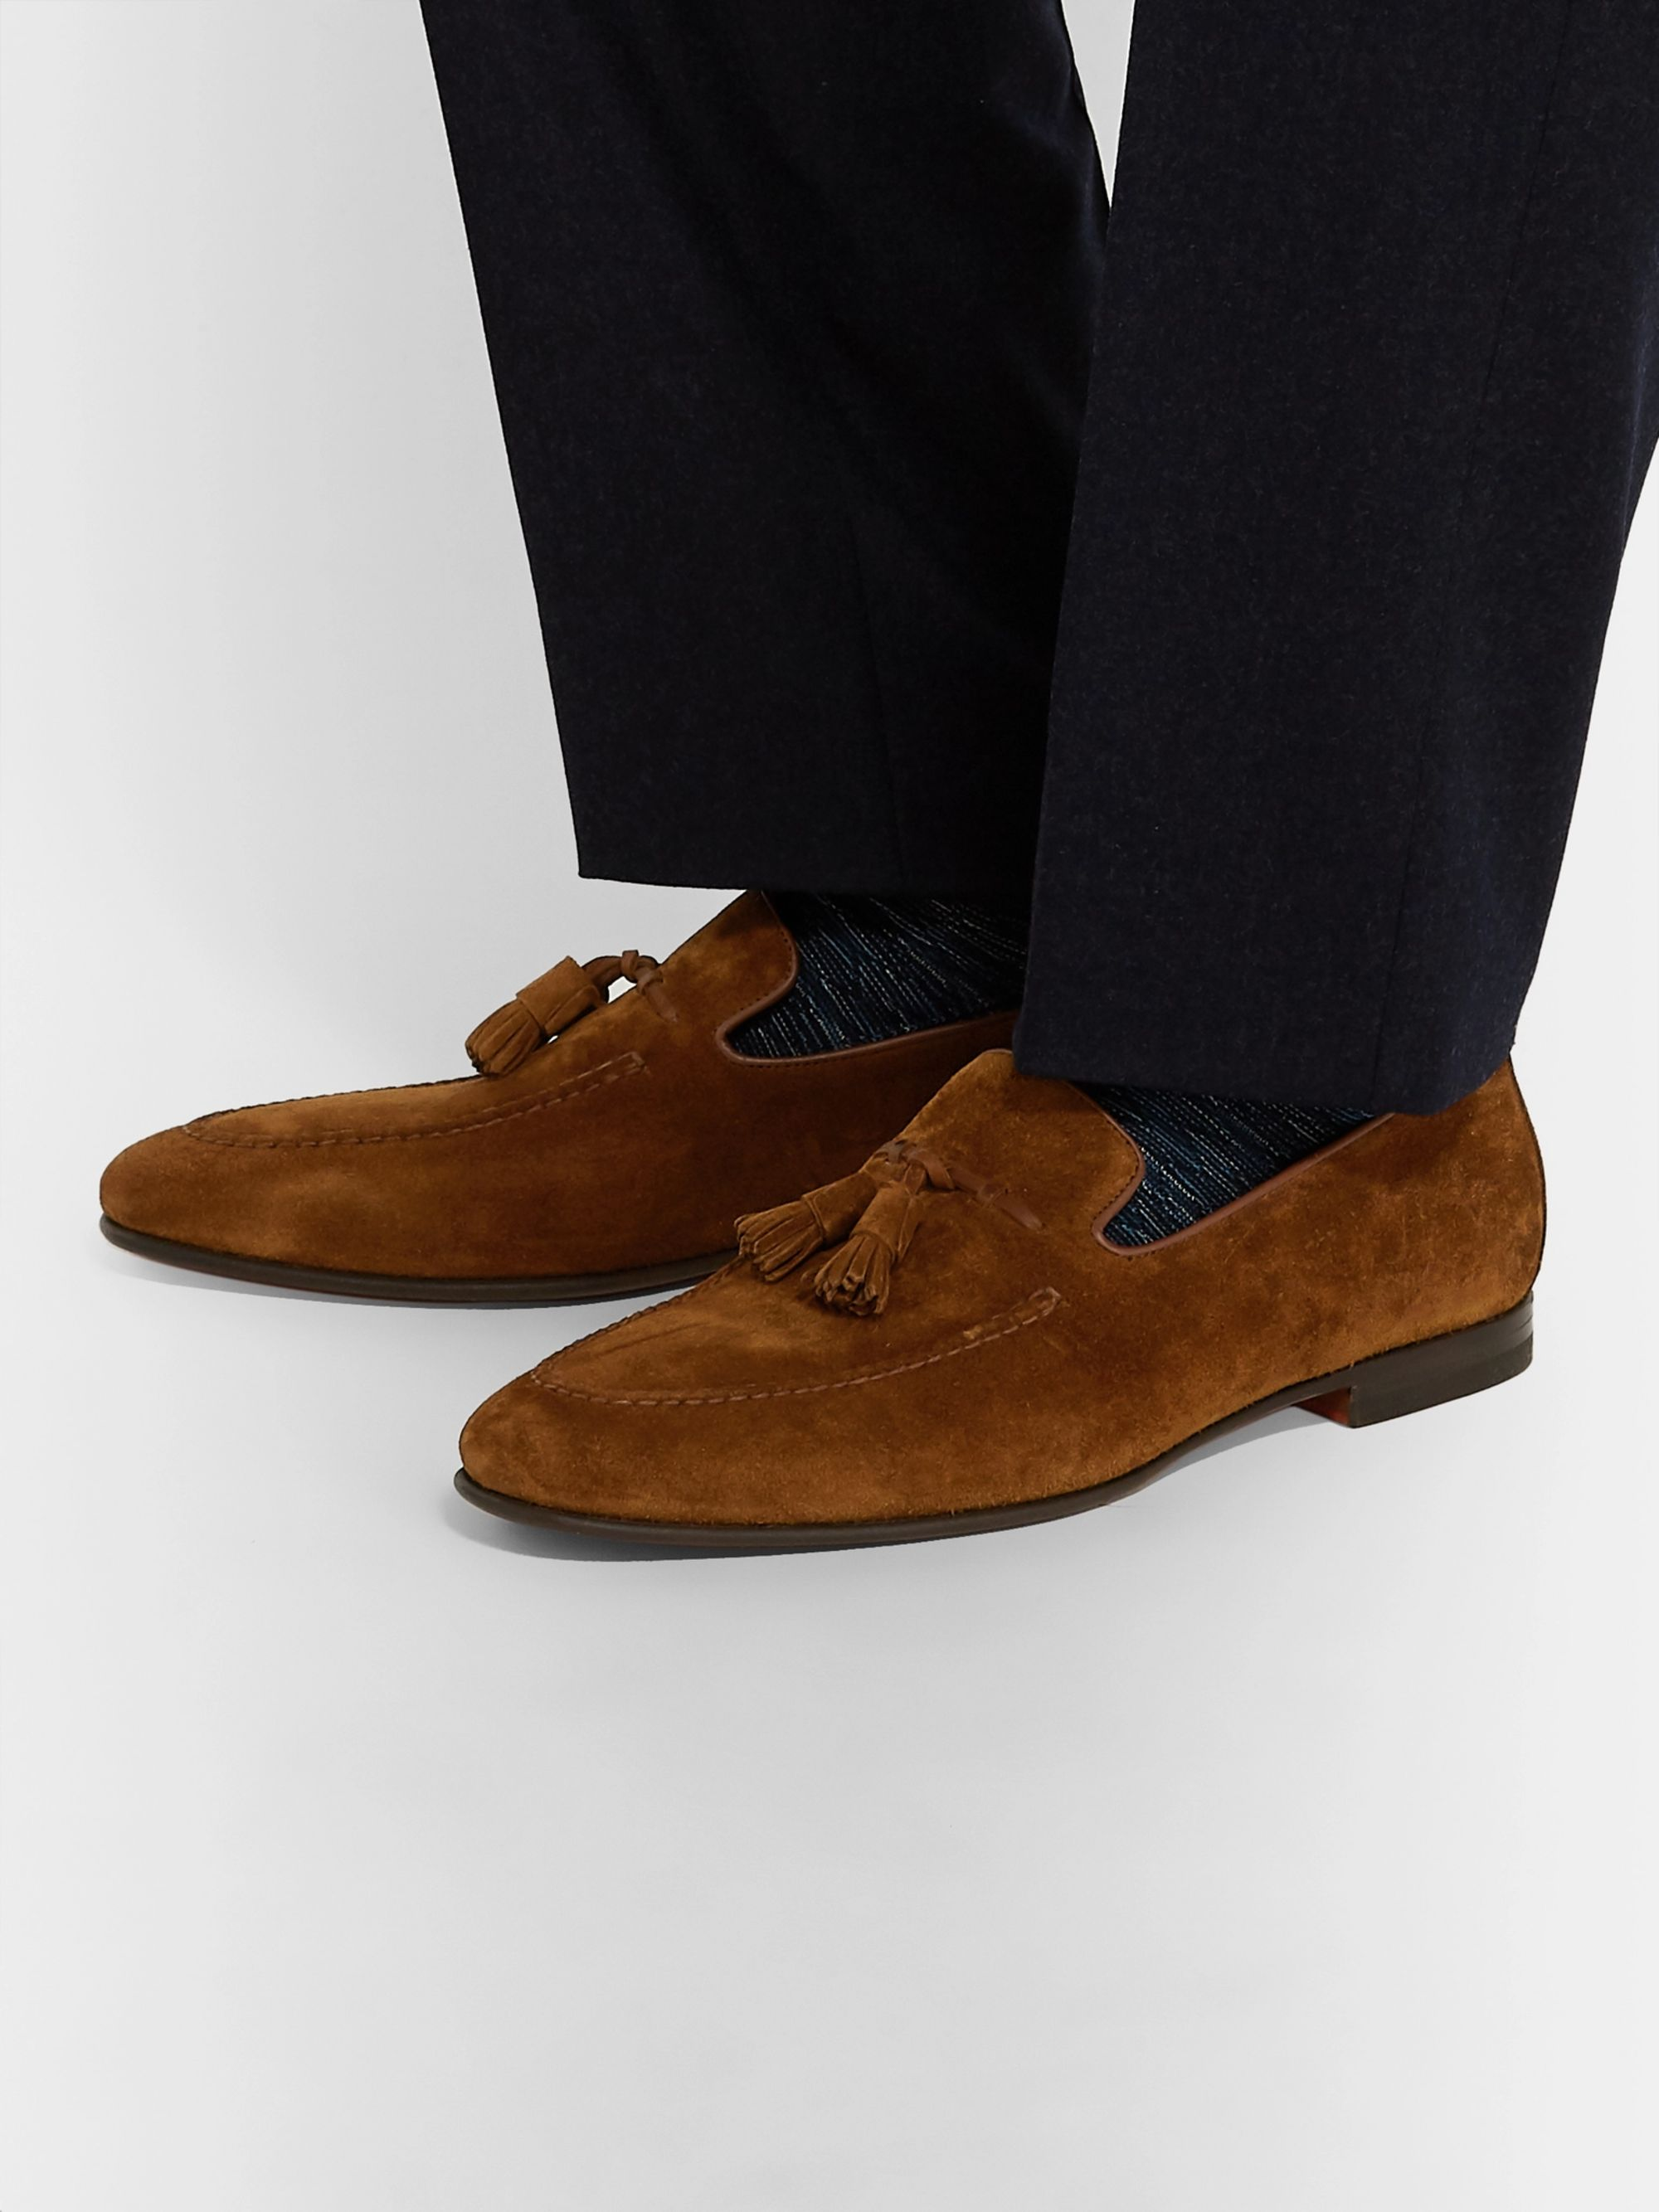 6585c62bb4b4f Suede Tasseled Loafers